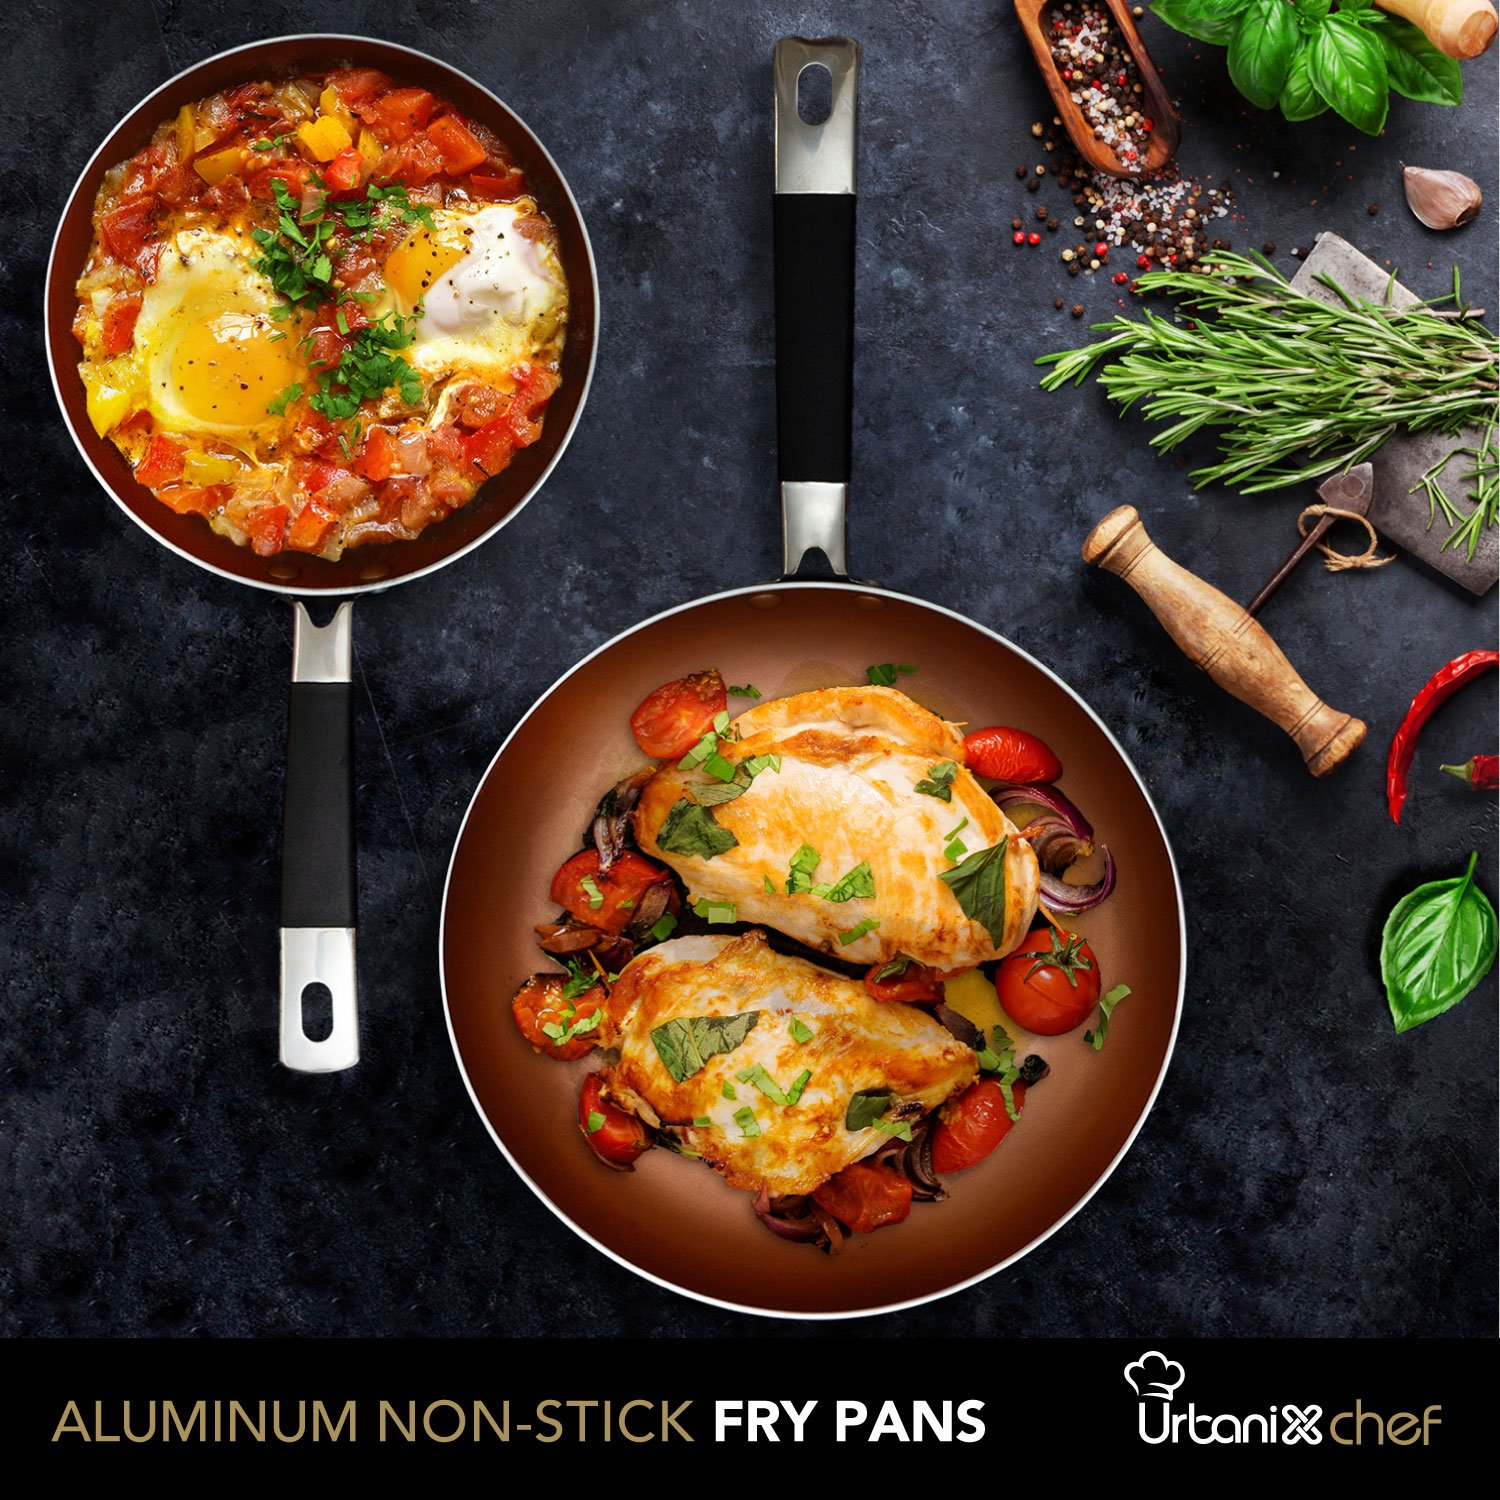 UrbanixChef Frying Pans . Superior German Greblon Non-stick Coating Copper Color. 2 Pcs - 8 and 10 Inch.100% PFOA Free,Induction Compatible , Oven Safe.  Bonus 3 pc.11 Inch Pan Protectors by URBANIX (Image #3)